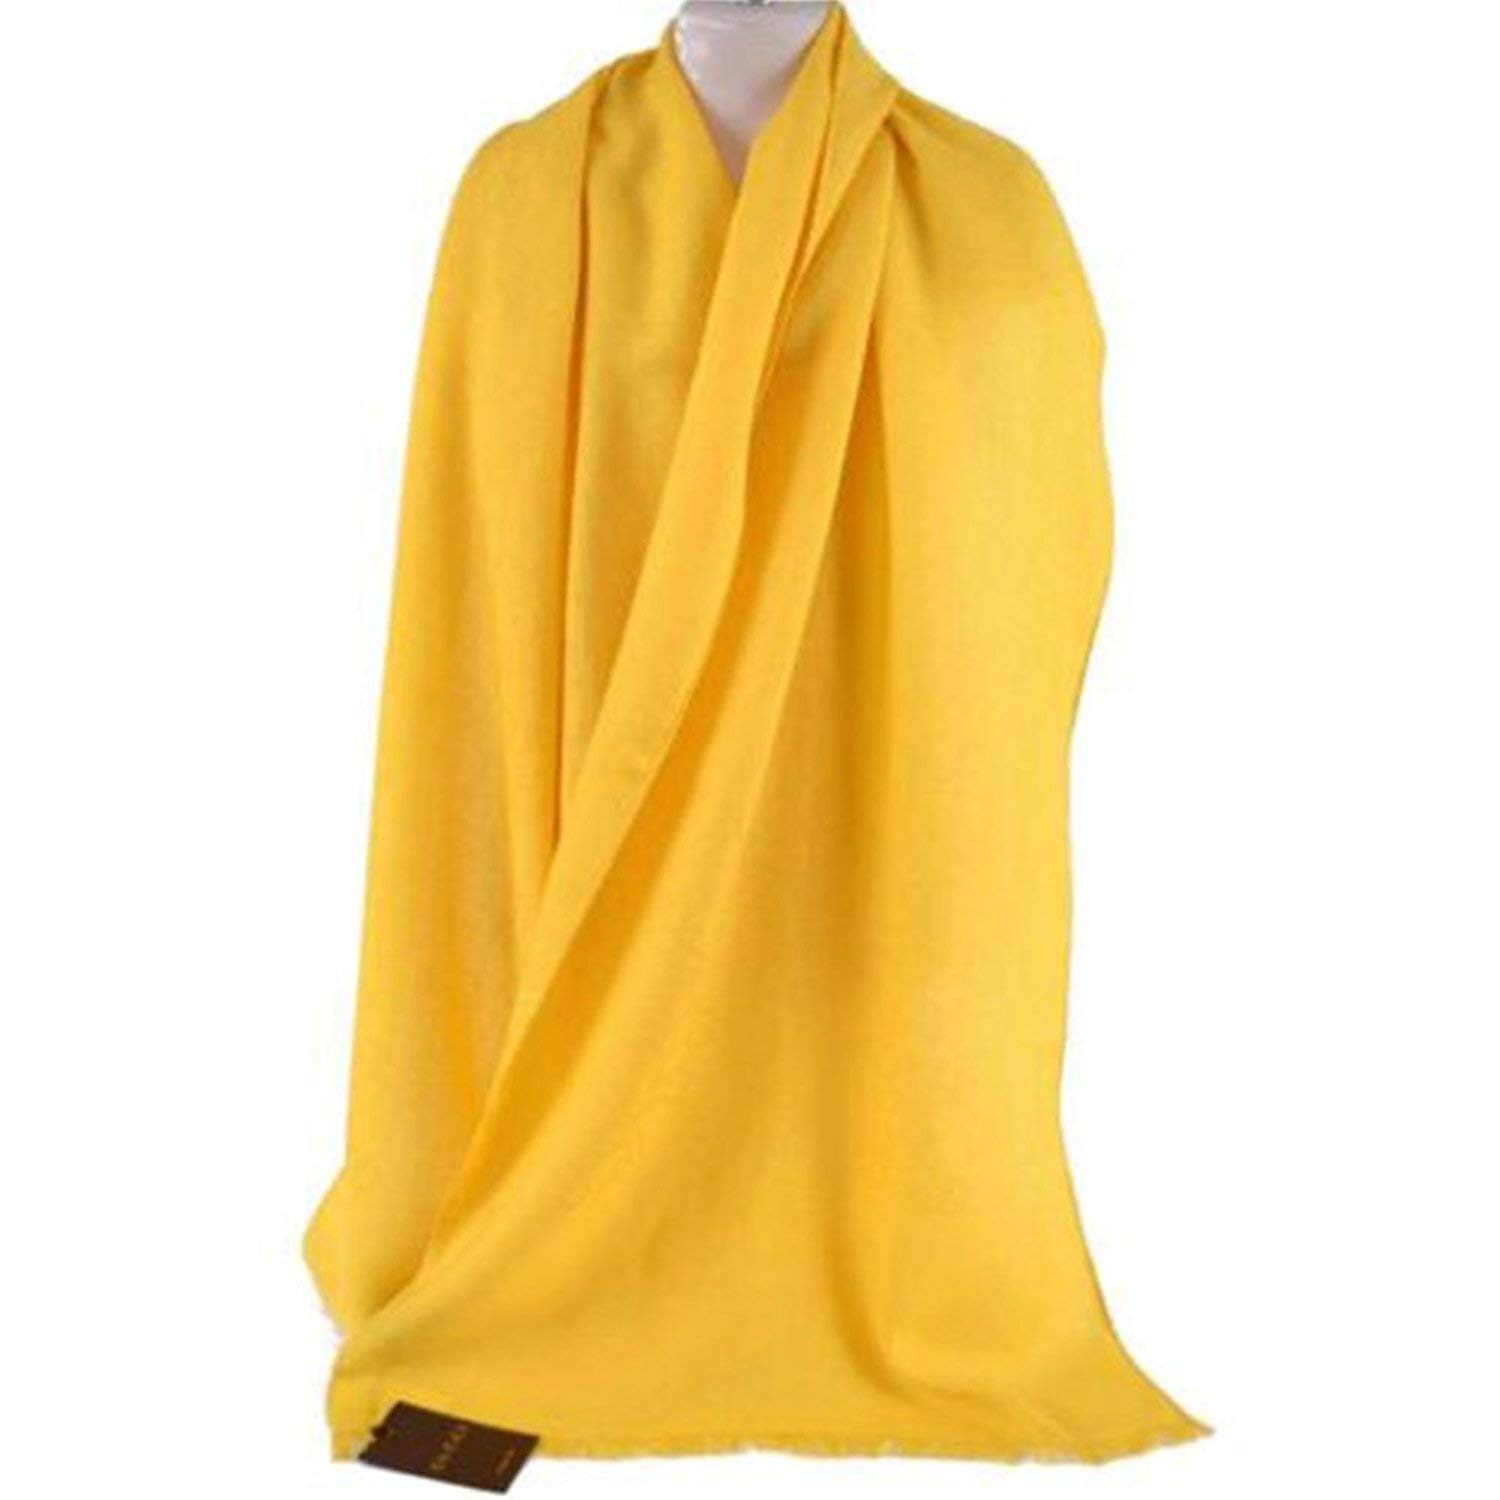 Gucci Scarf Yellow Silk and Wool Blend Designer Shawl 165904